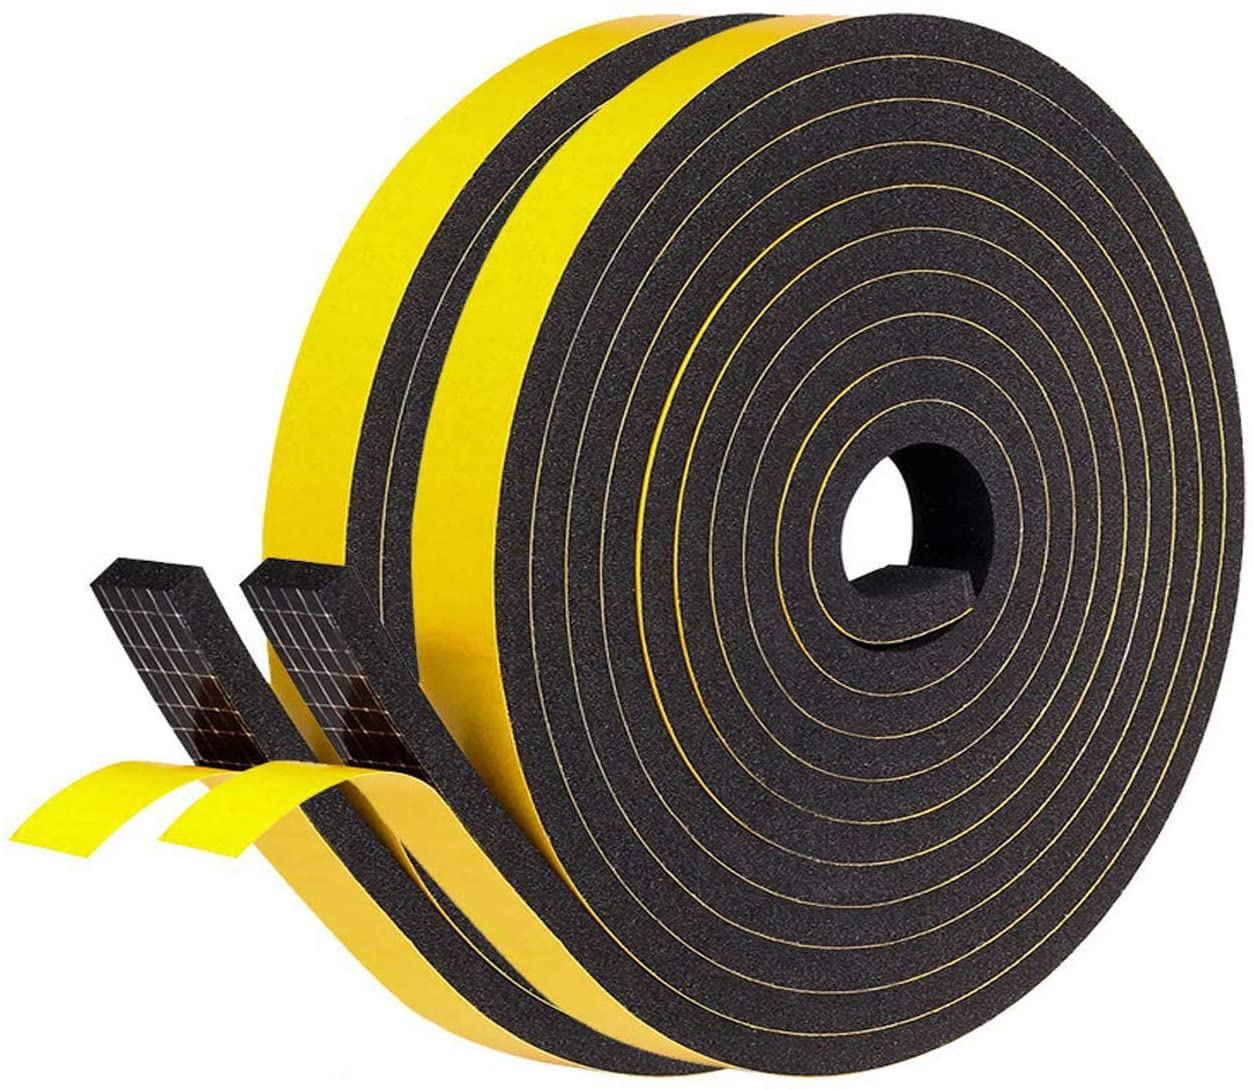 Total 13 Feet 1 Inch Wide X 3//8 Inch Thick fowong White Foam Weather Stripping- 2 Rolls AC Window Insulation High Density Adhesive Foam Seal Tape Neoprene Rubber Seal Strip 6.5 Ft X 2